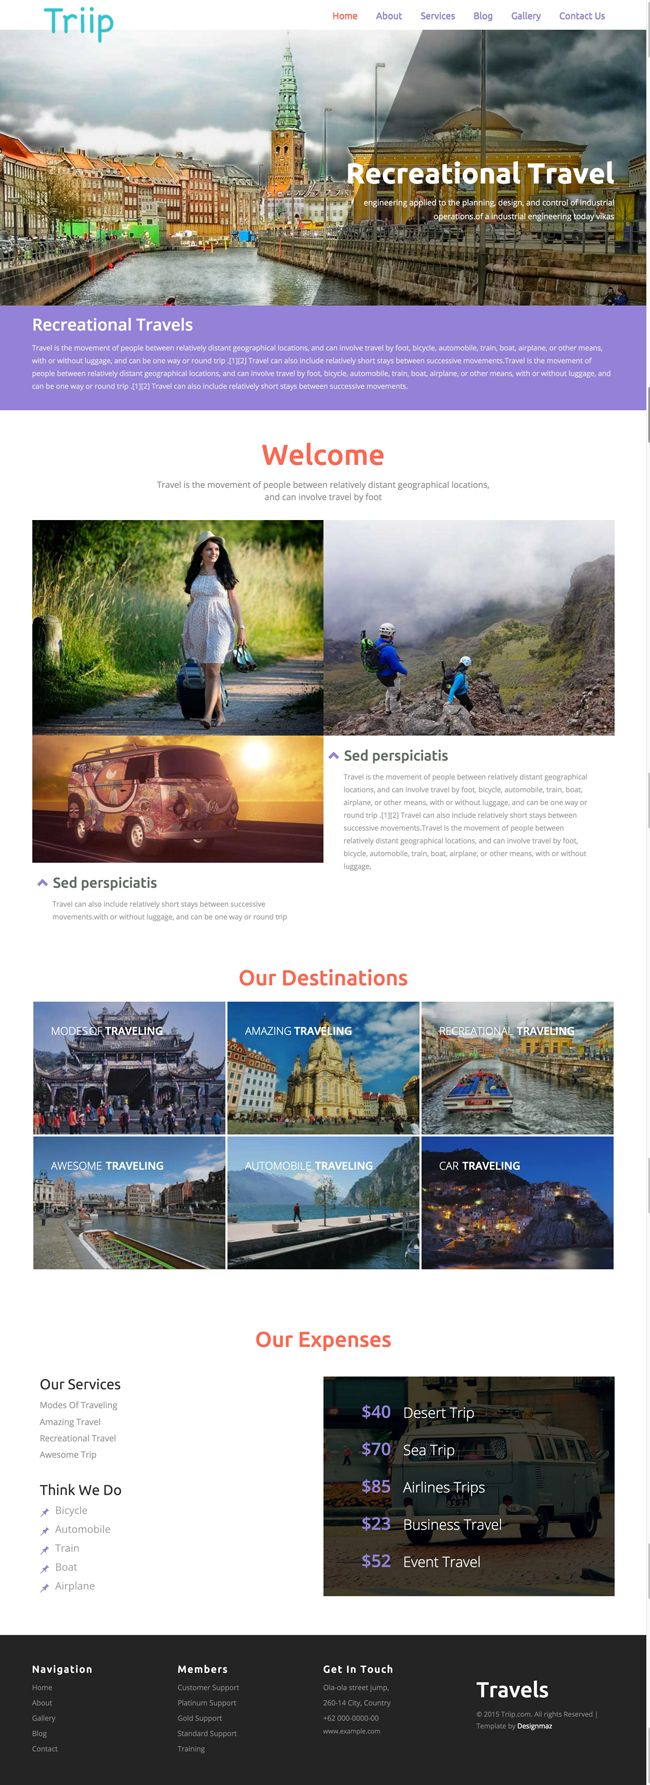 Triip-Free-HTML5-CSS3-Travel-Agency-Template-Preview